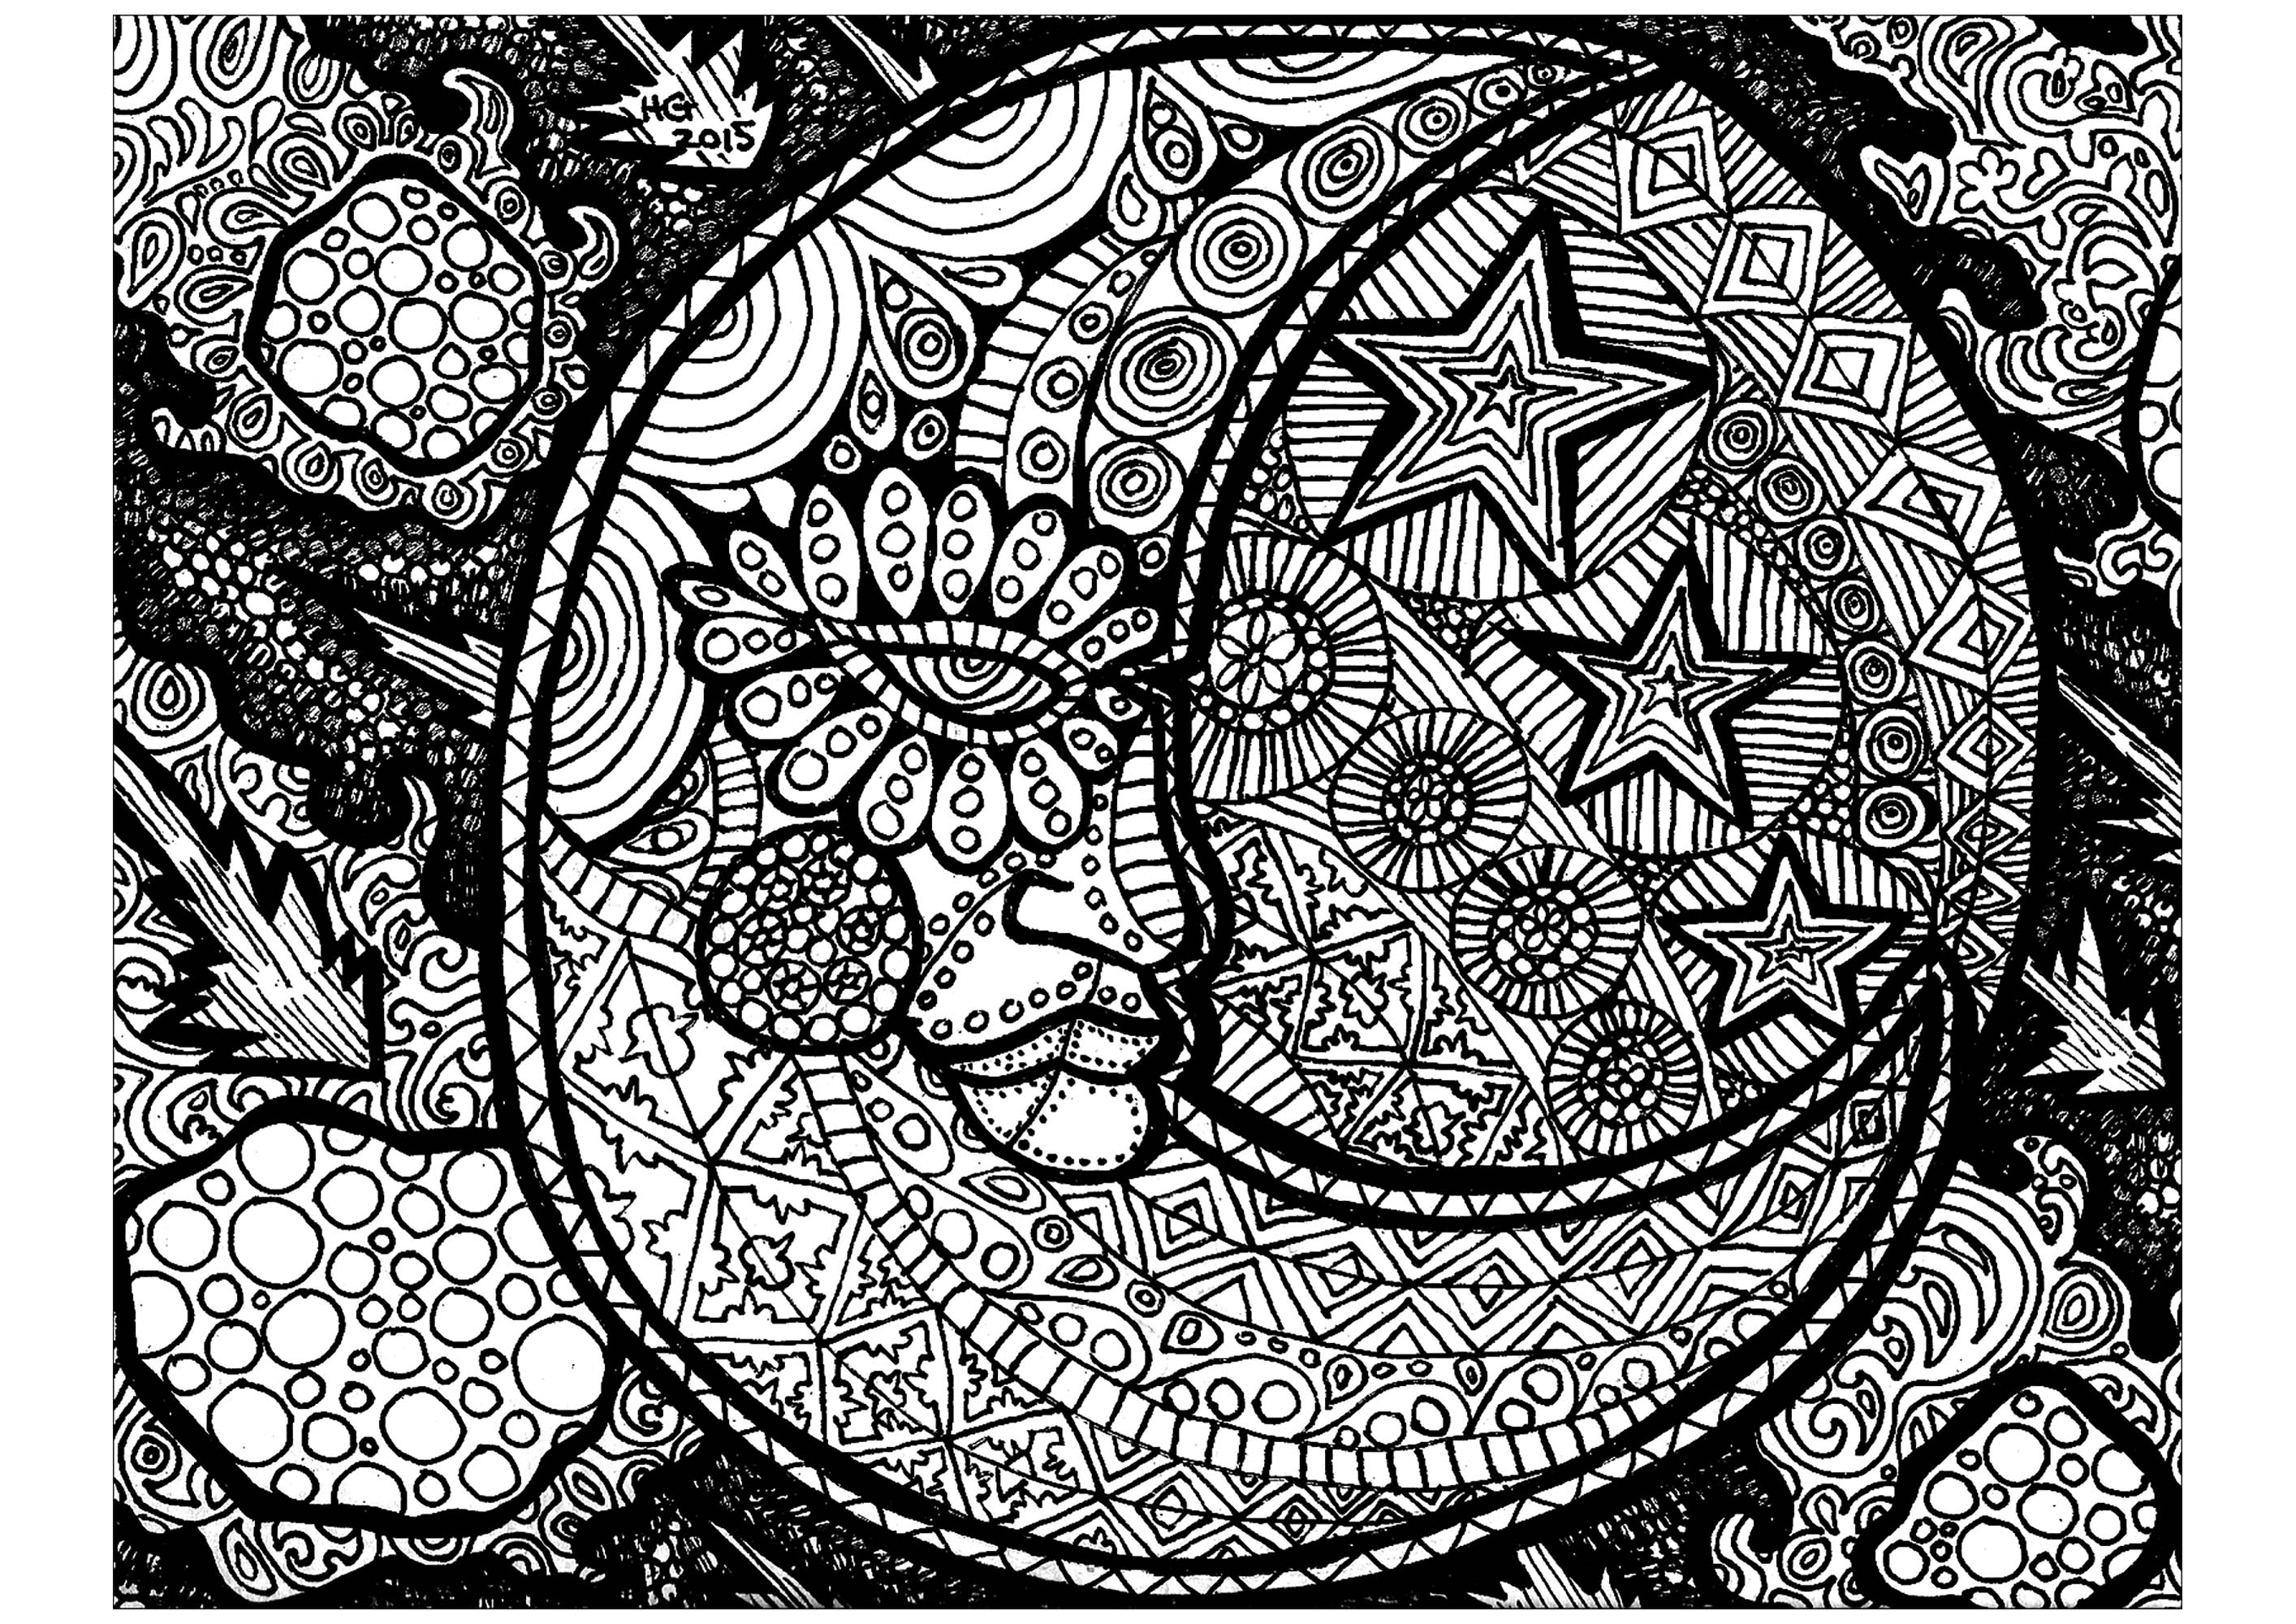 zentangle patterns coloring pages zentangle patterns coloring pages at getcoloringscom pages coloring patterns zentangle